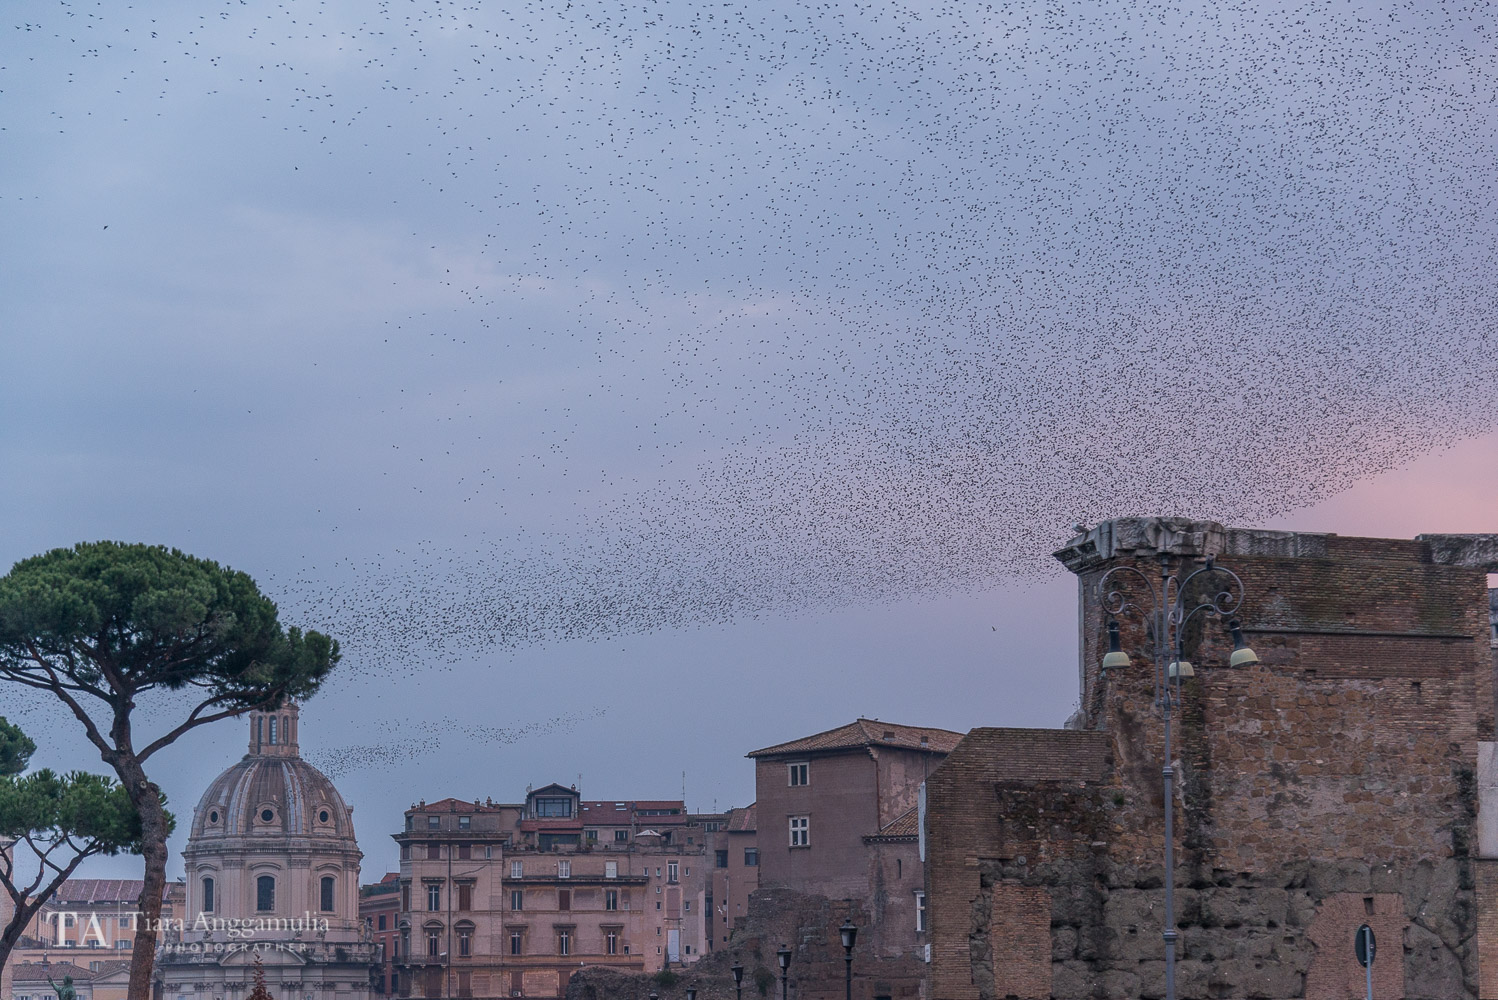 A flock of birds flying over Rome.